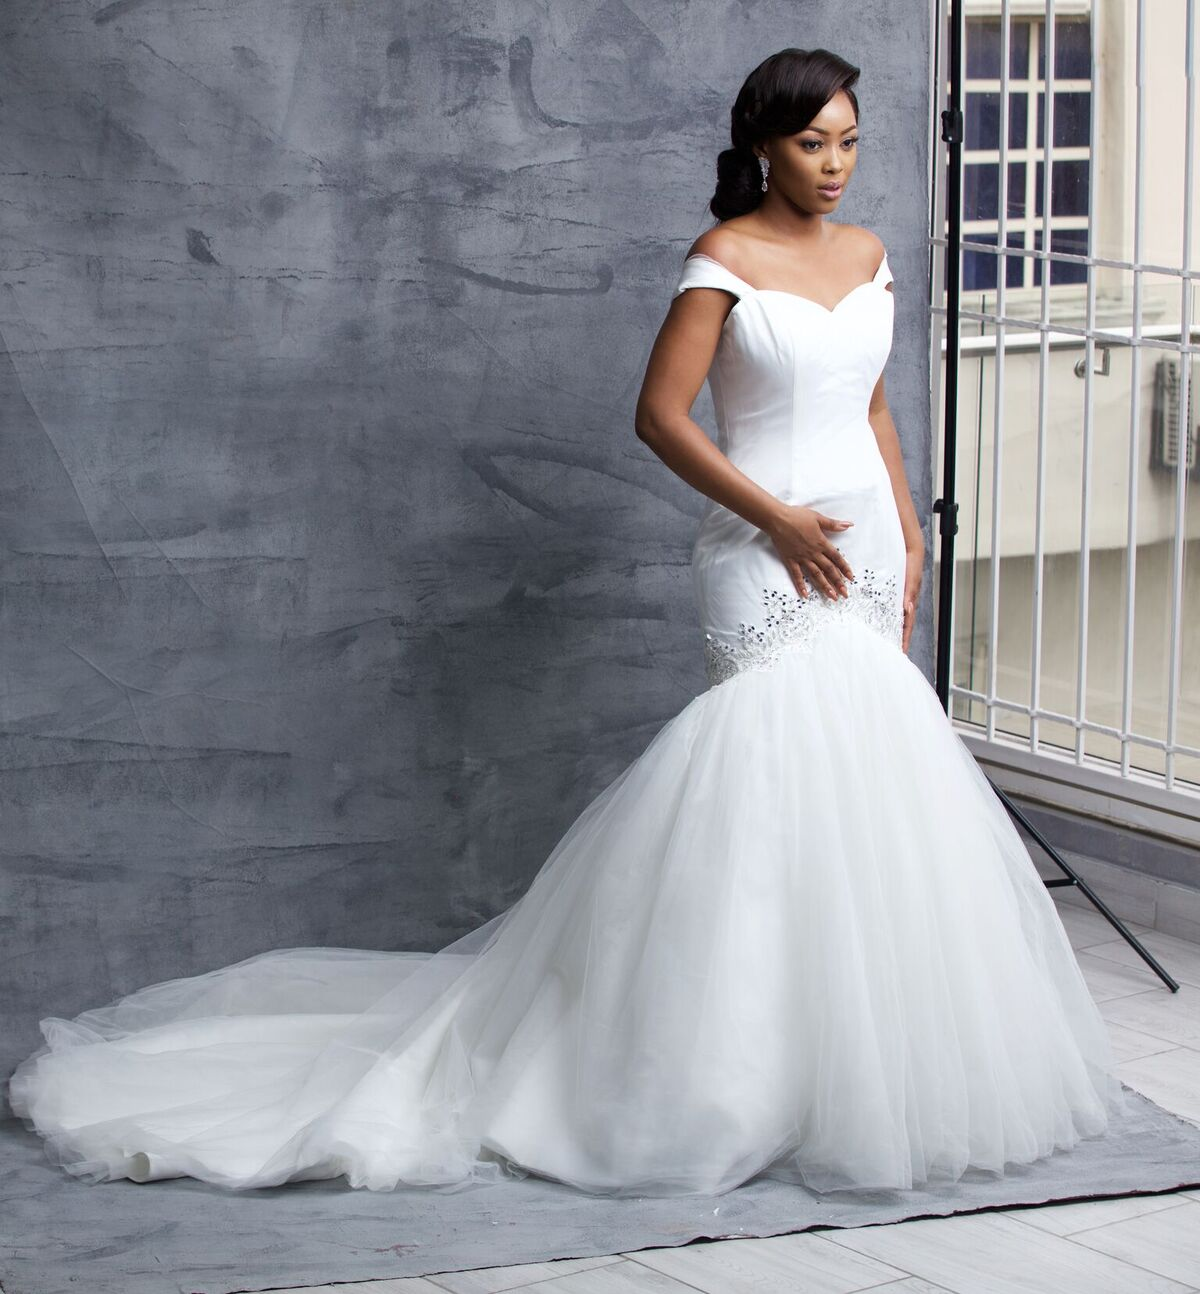 Carolyn 1_Love Tims, I Do Weddings New Bridal Collection_2016_BellaNaija